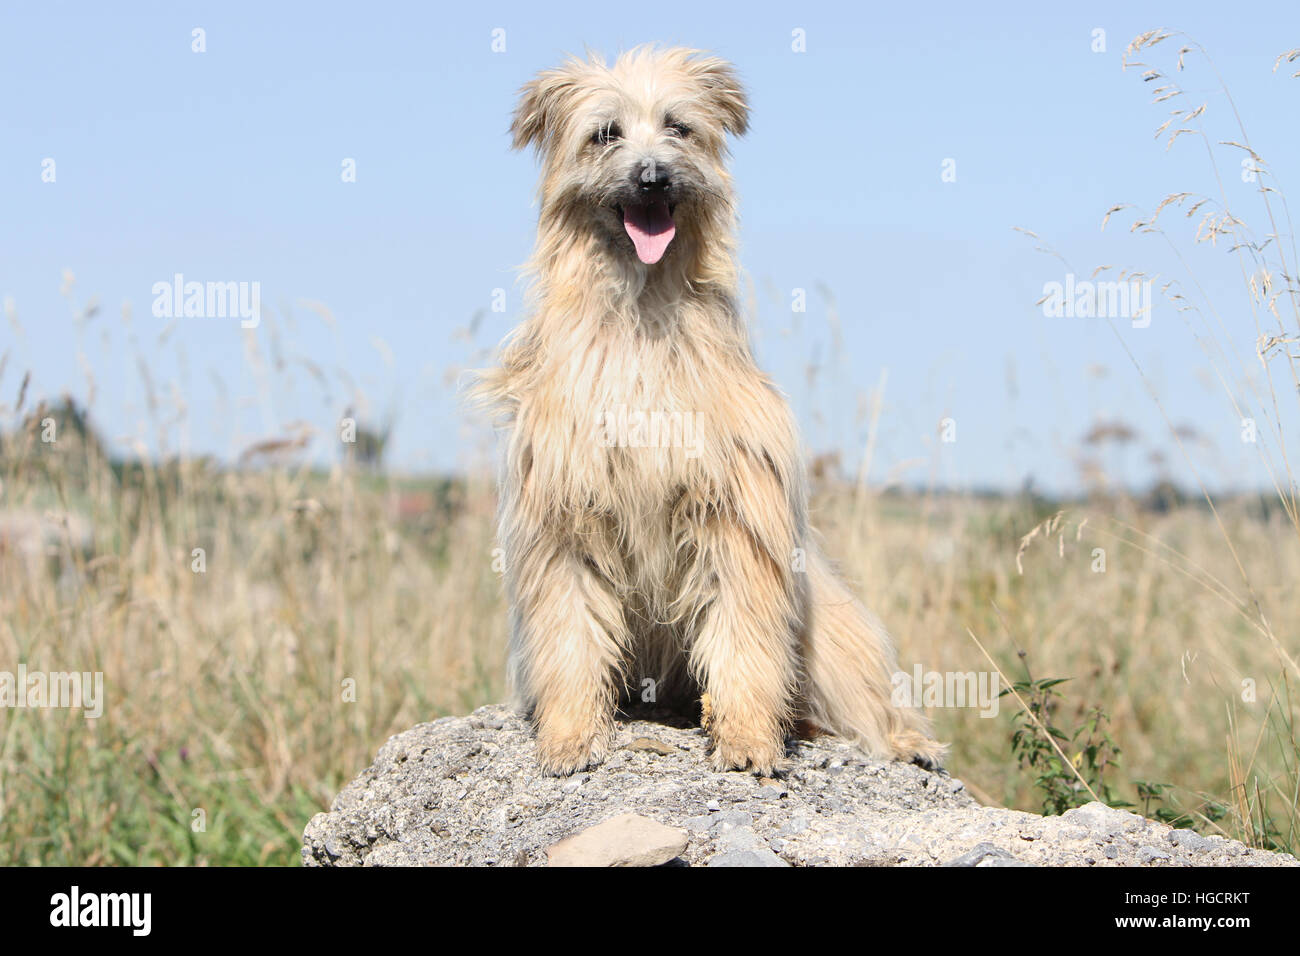 Dog Pyrenean Shepherd adult adults fawn on a rock standing Stock Photo